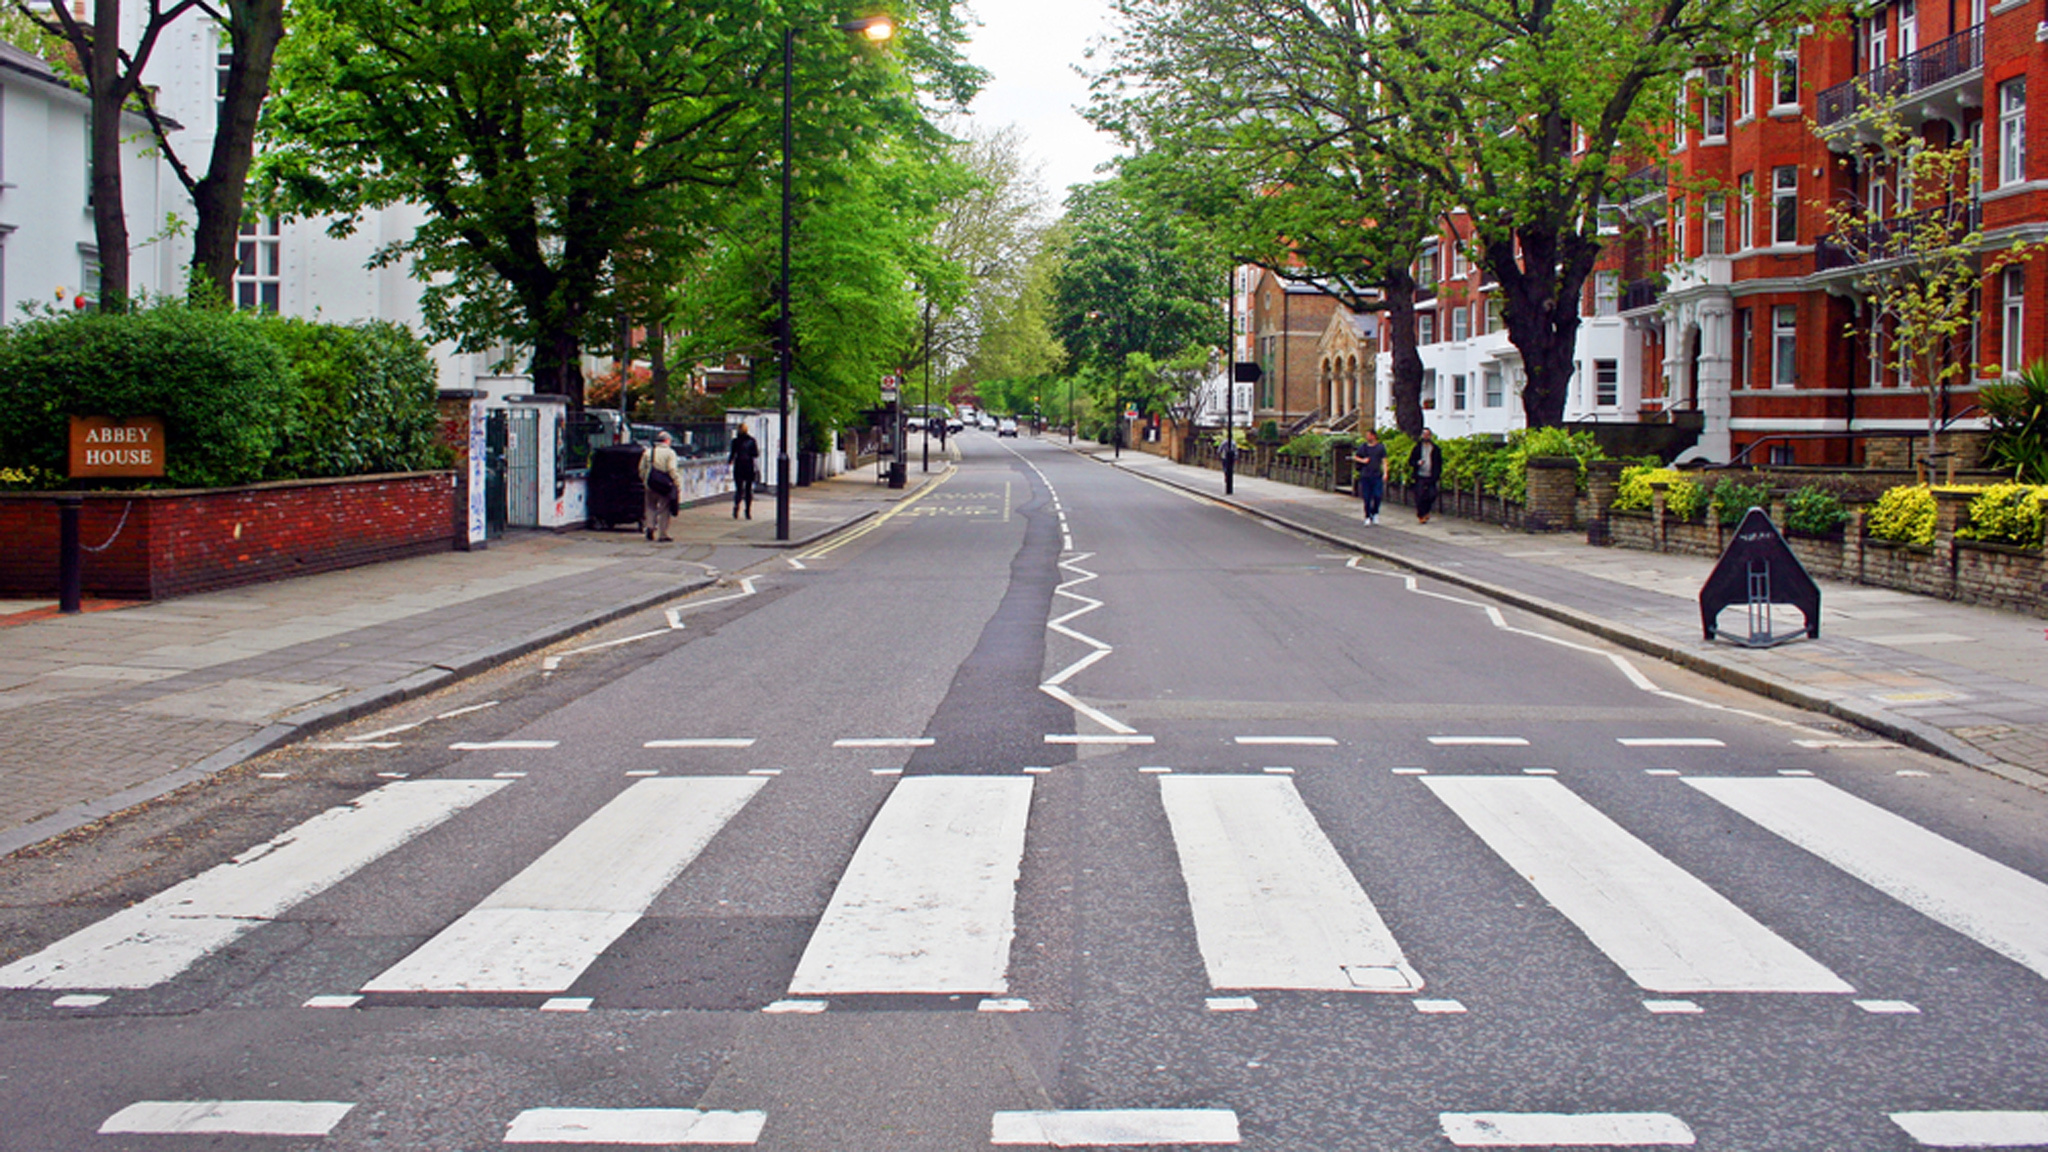 London is so empty that they've repainted the Abbey Road zebra crossing